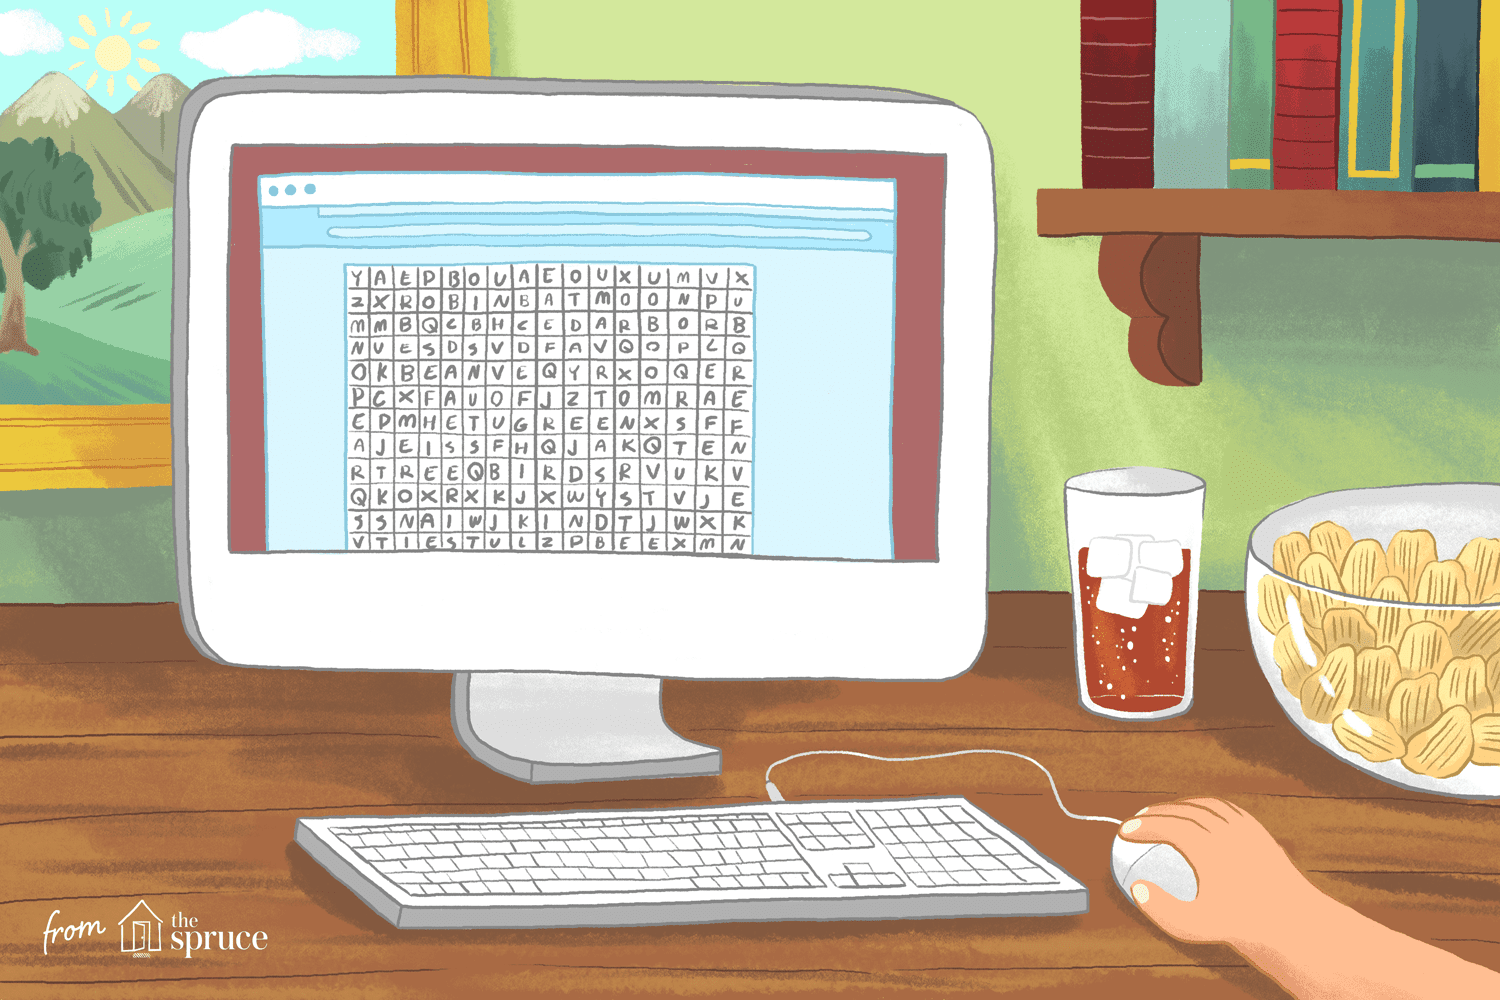 View 23 Puzzle Maker Word Search With Hidden Message